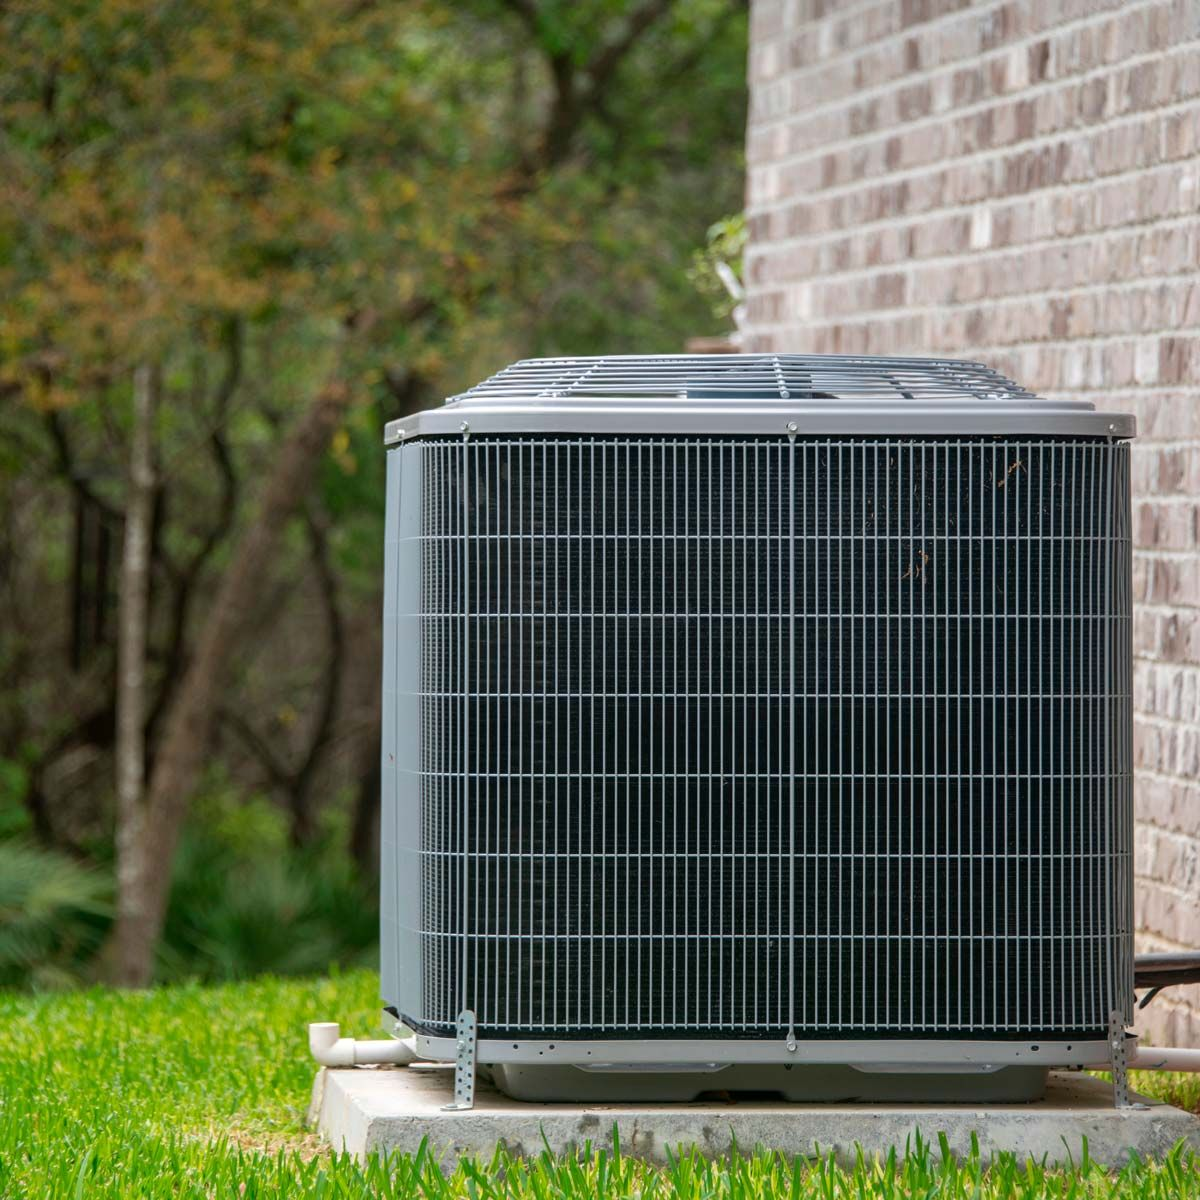 19 Home Items You Should Be Cleaning Every A Month Hvac System Hvac Air Hvac